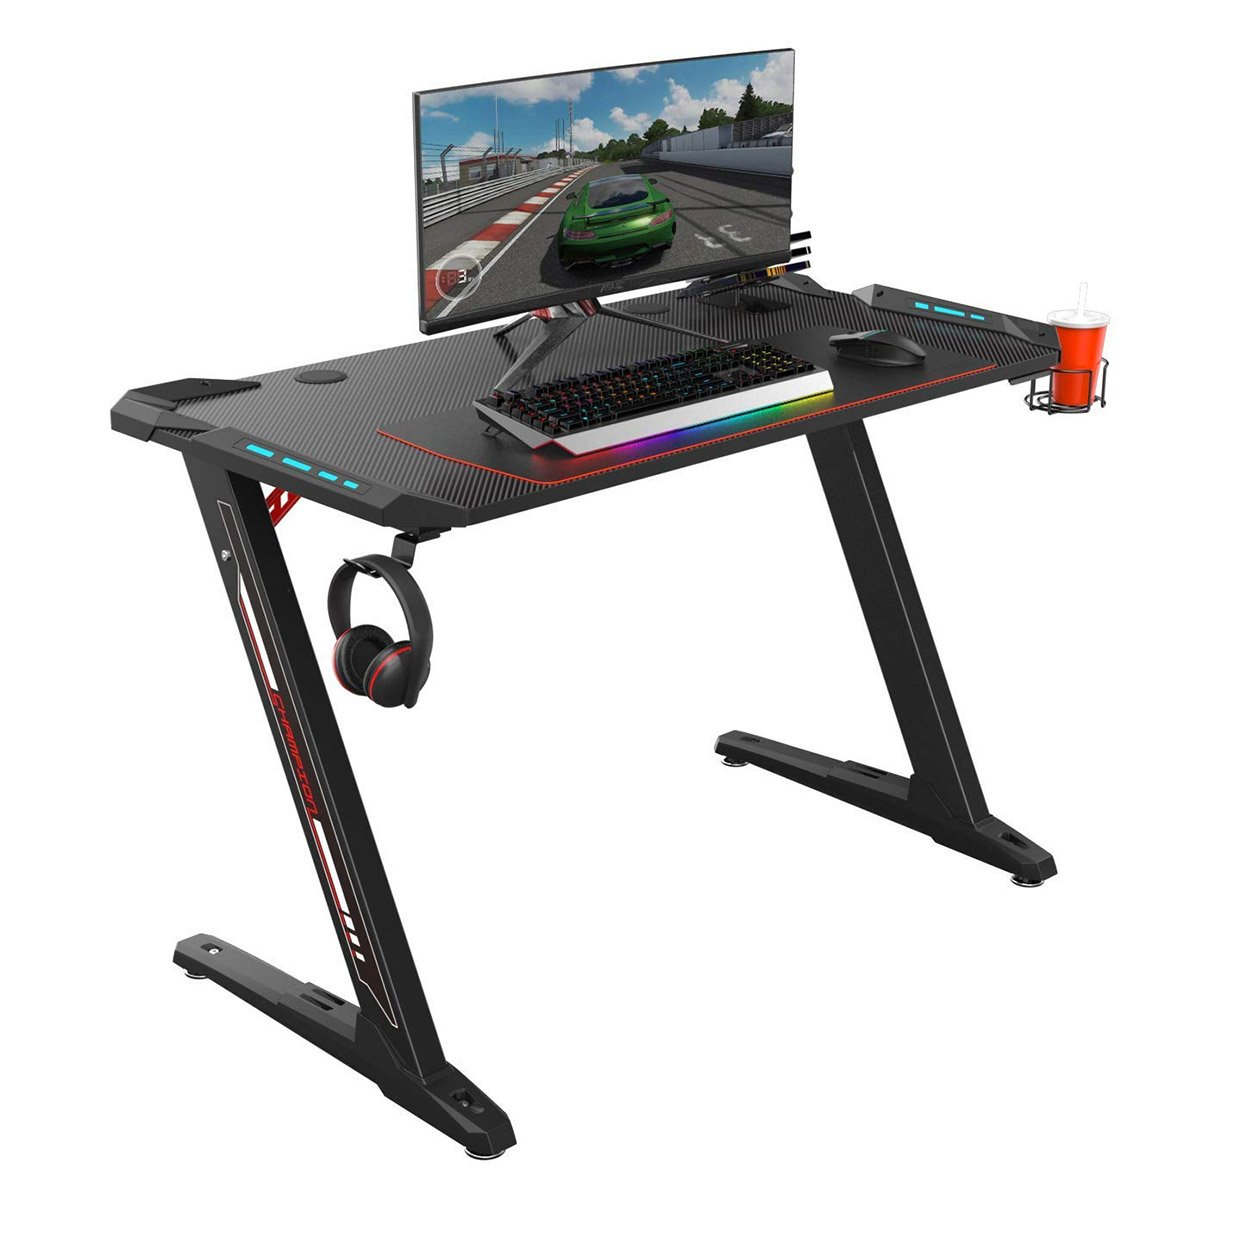 Eureka Ergonomic Z1-S Gaming Desk